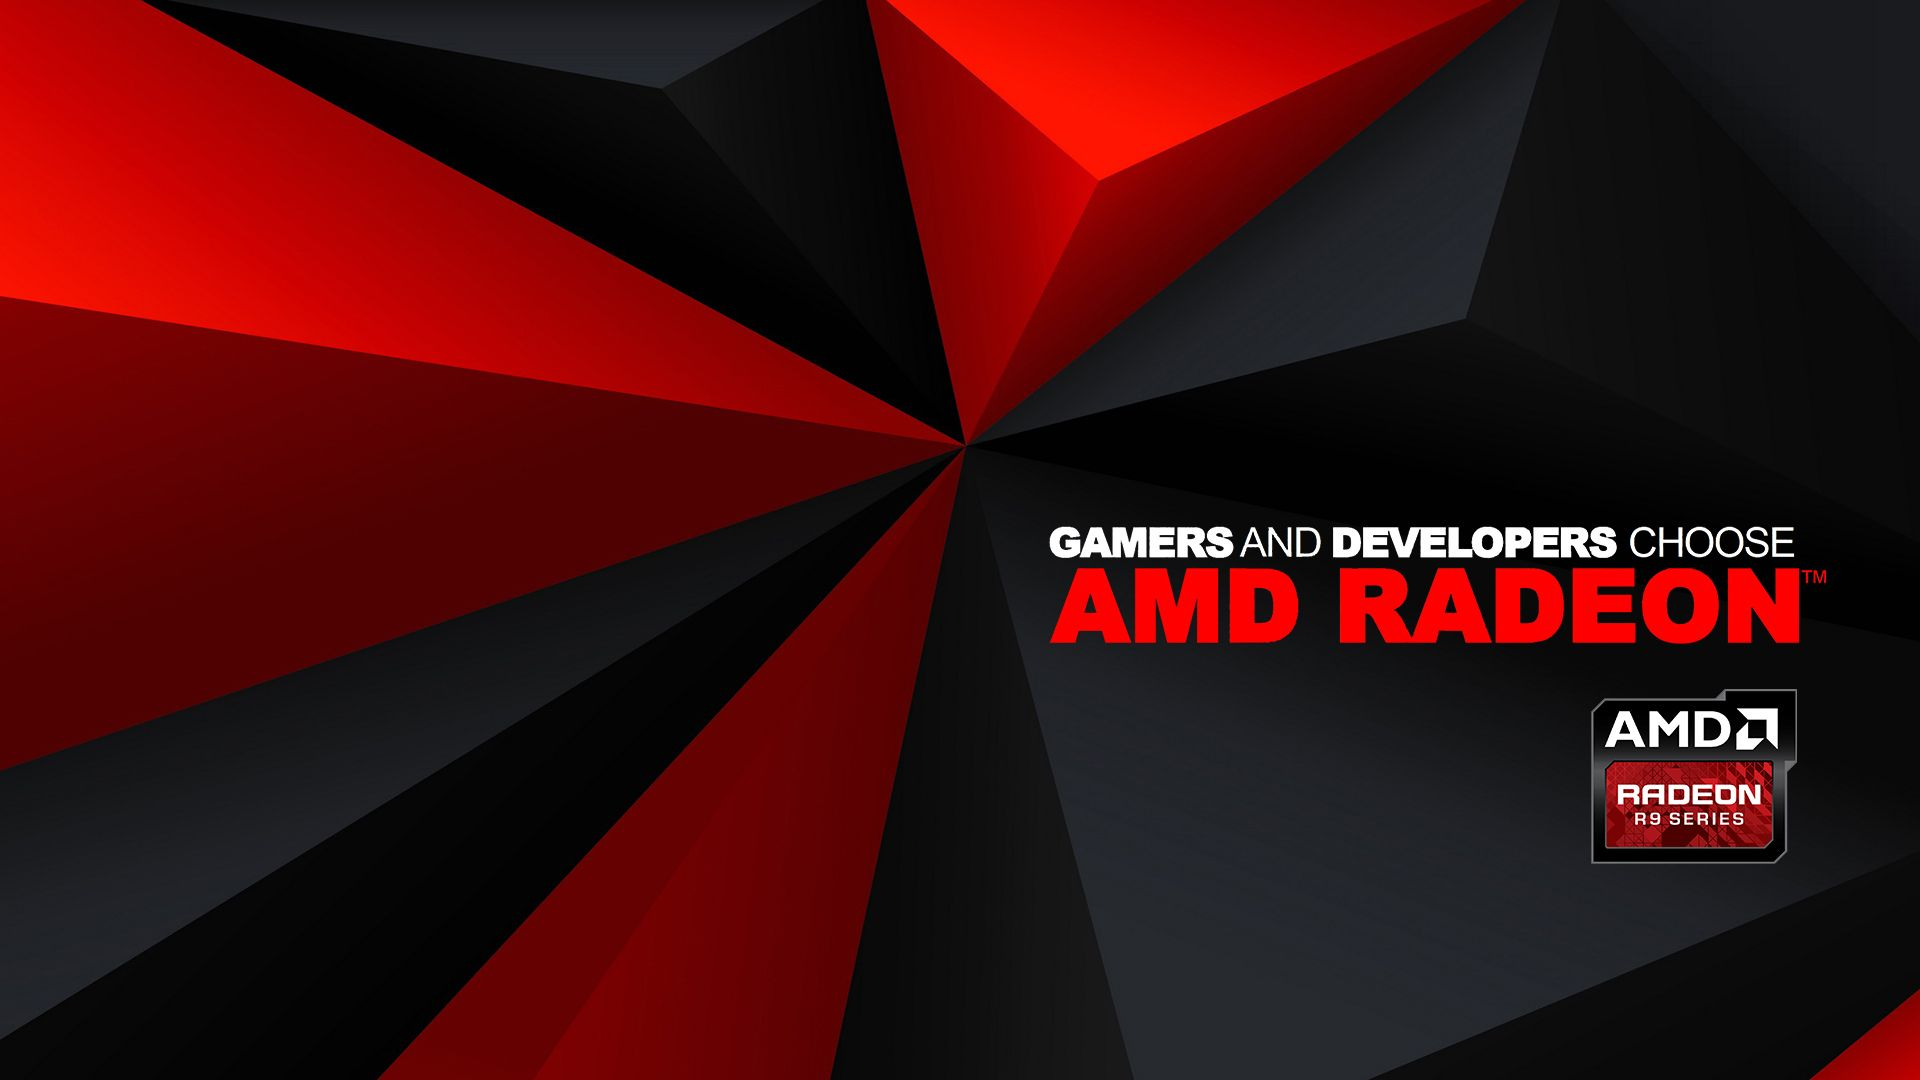 AMD Radeon Wallpapers - Top Free AMD